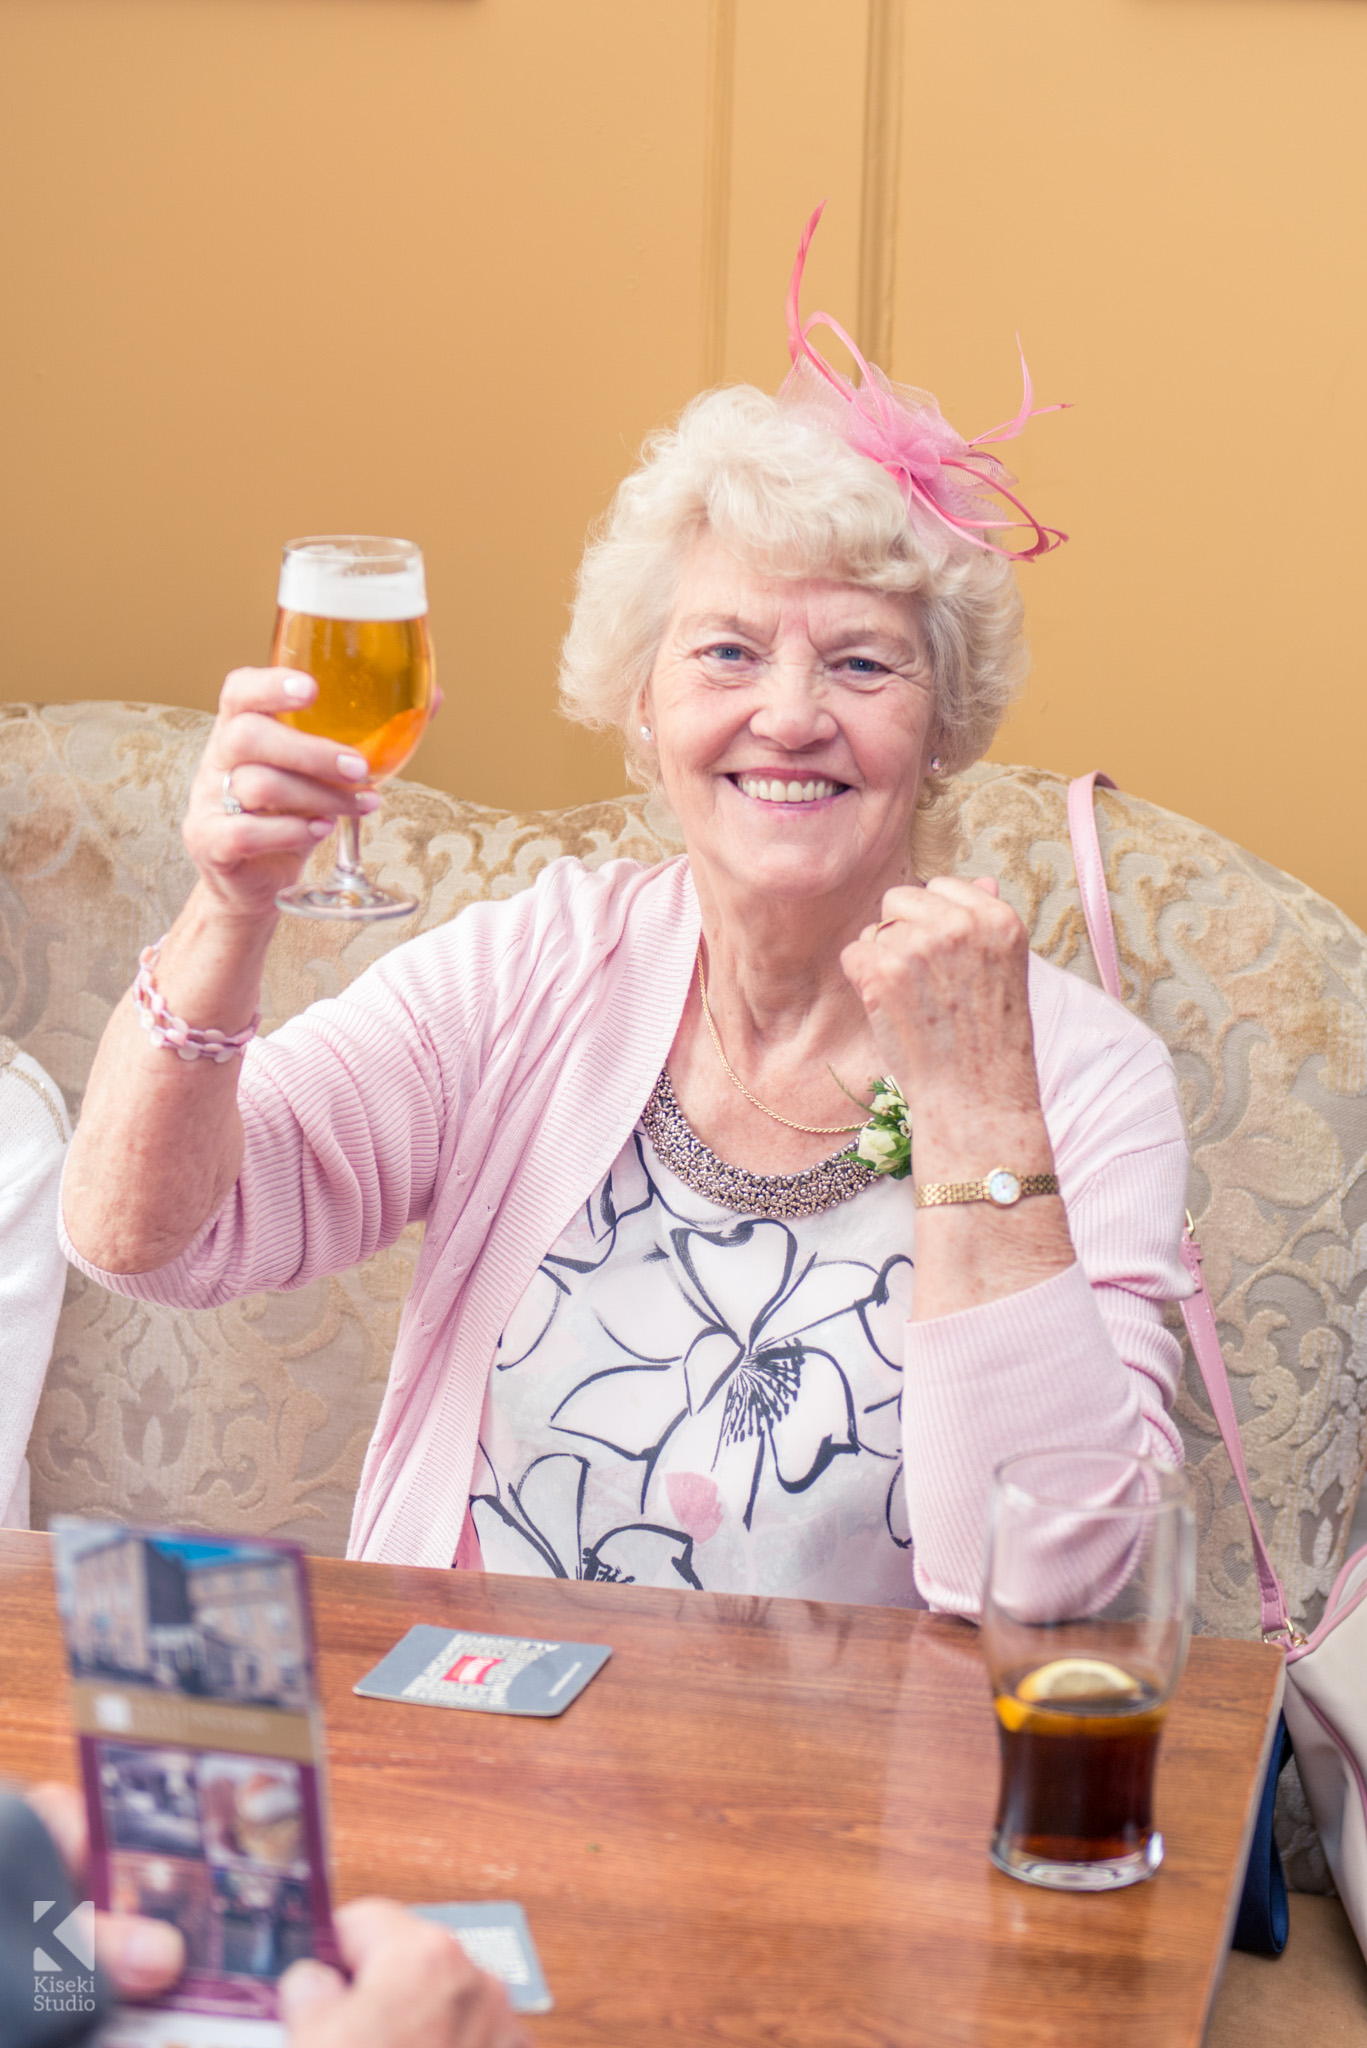 Brides mother raising her beer glass in joy